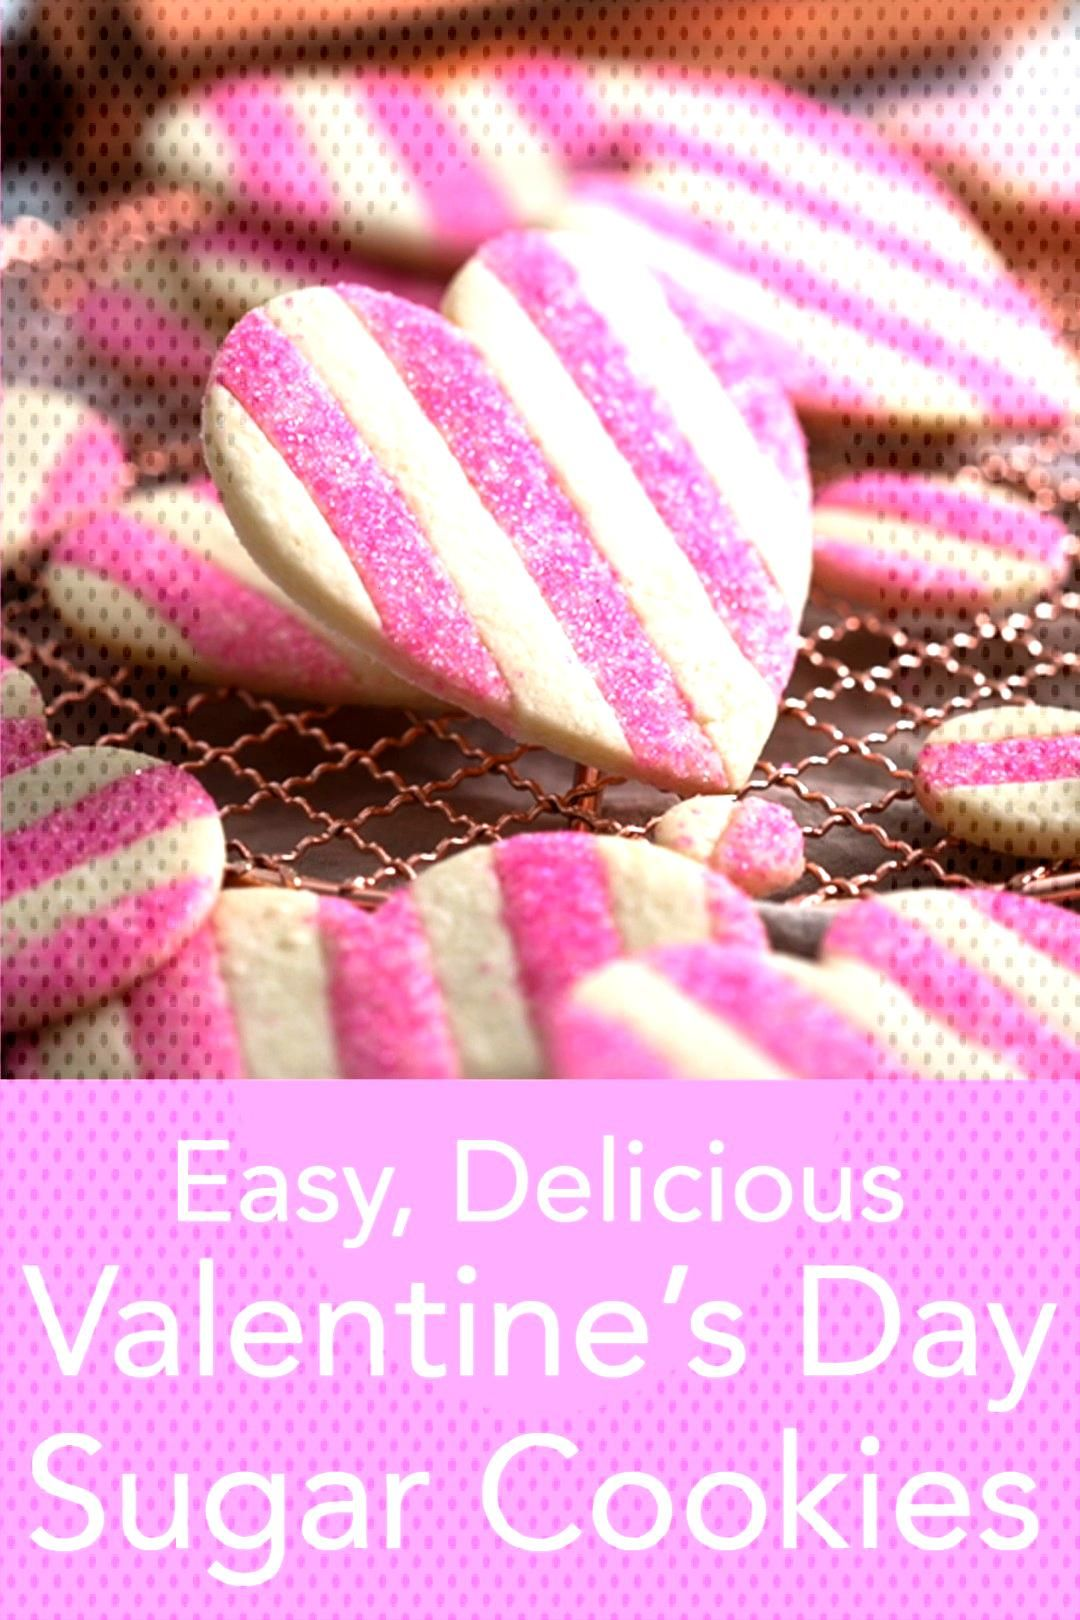 Valentine's Day Cookies  Beautiful striped pink and white heart-shaped Valentine cookies with a lit